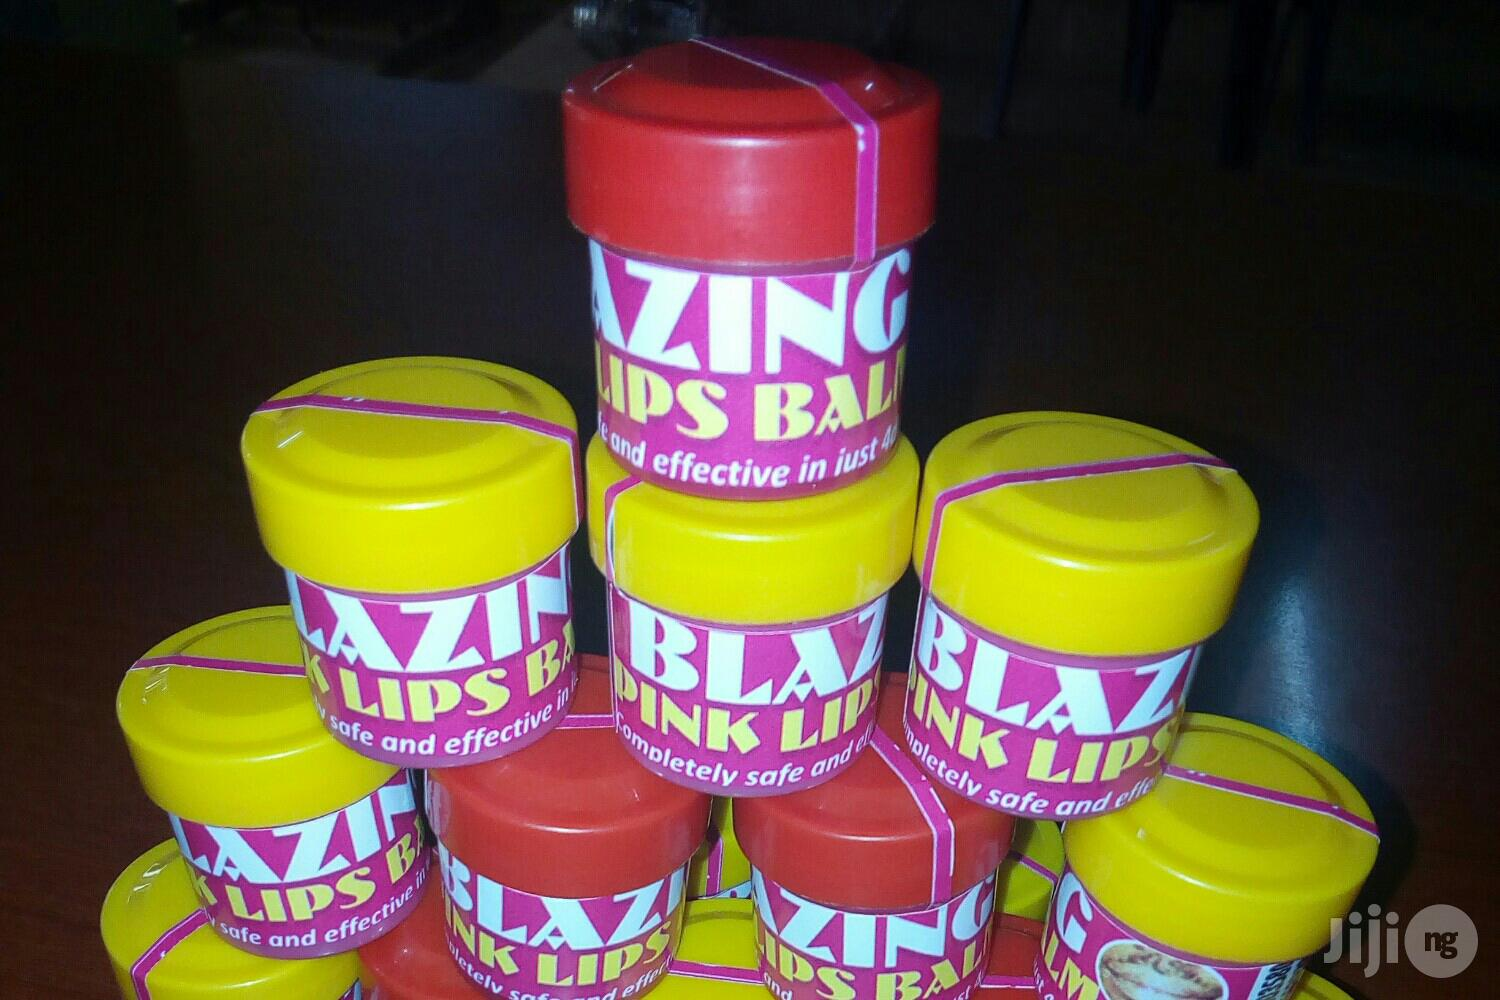 Blazing Permanent Pink/Red Lips Balm | Skin Care for sale in Ilorin South, Kwara State, Nigeria